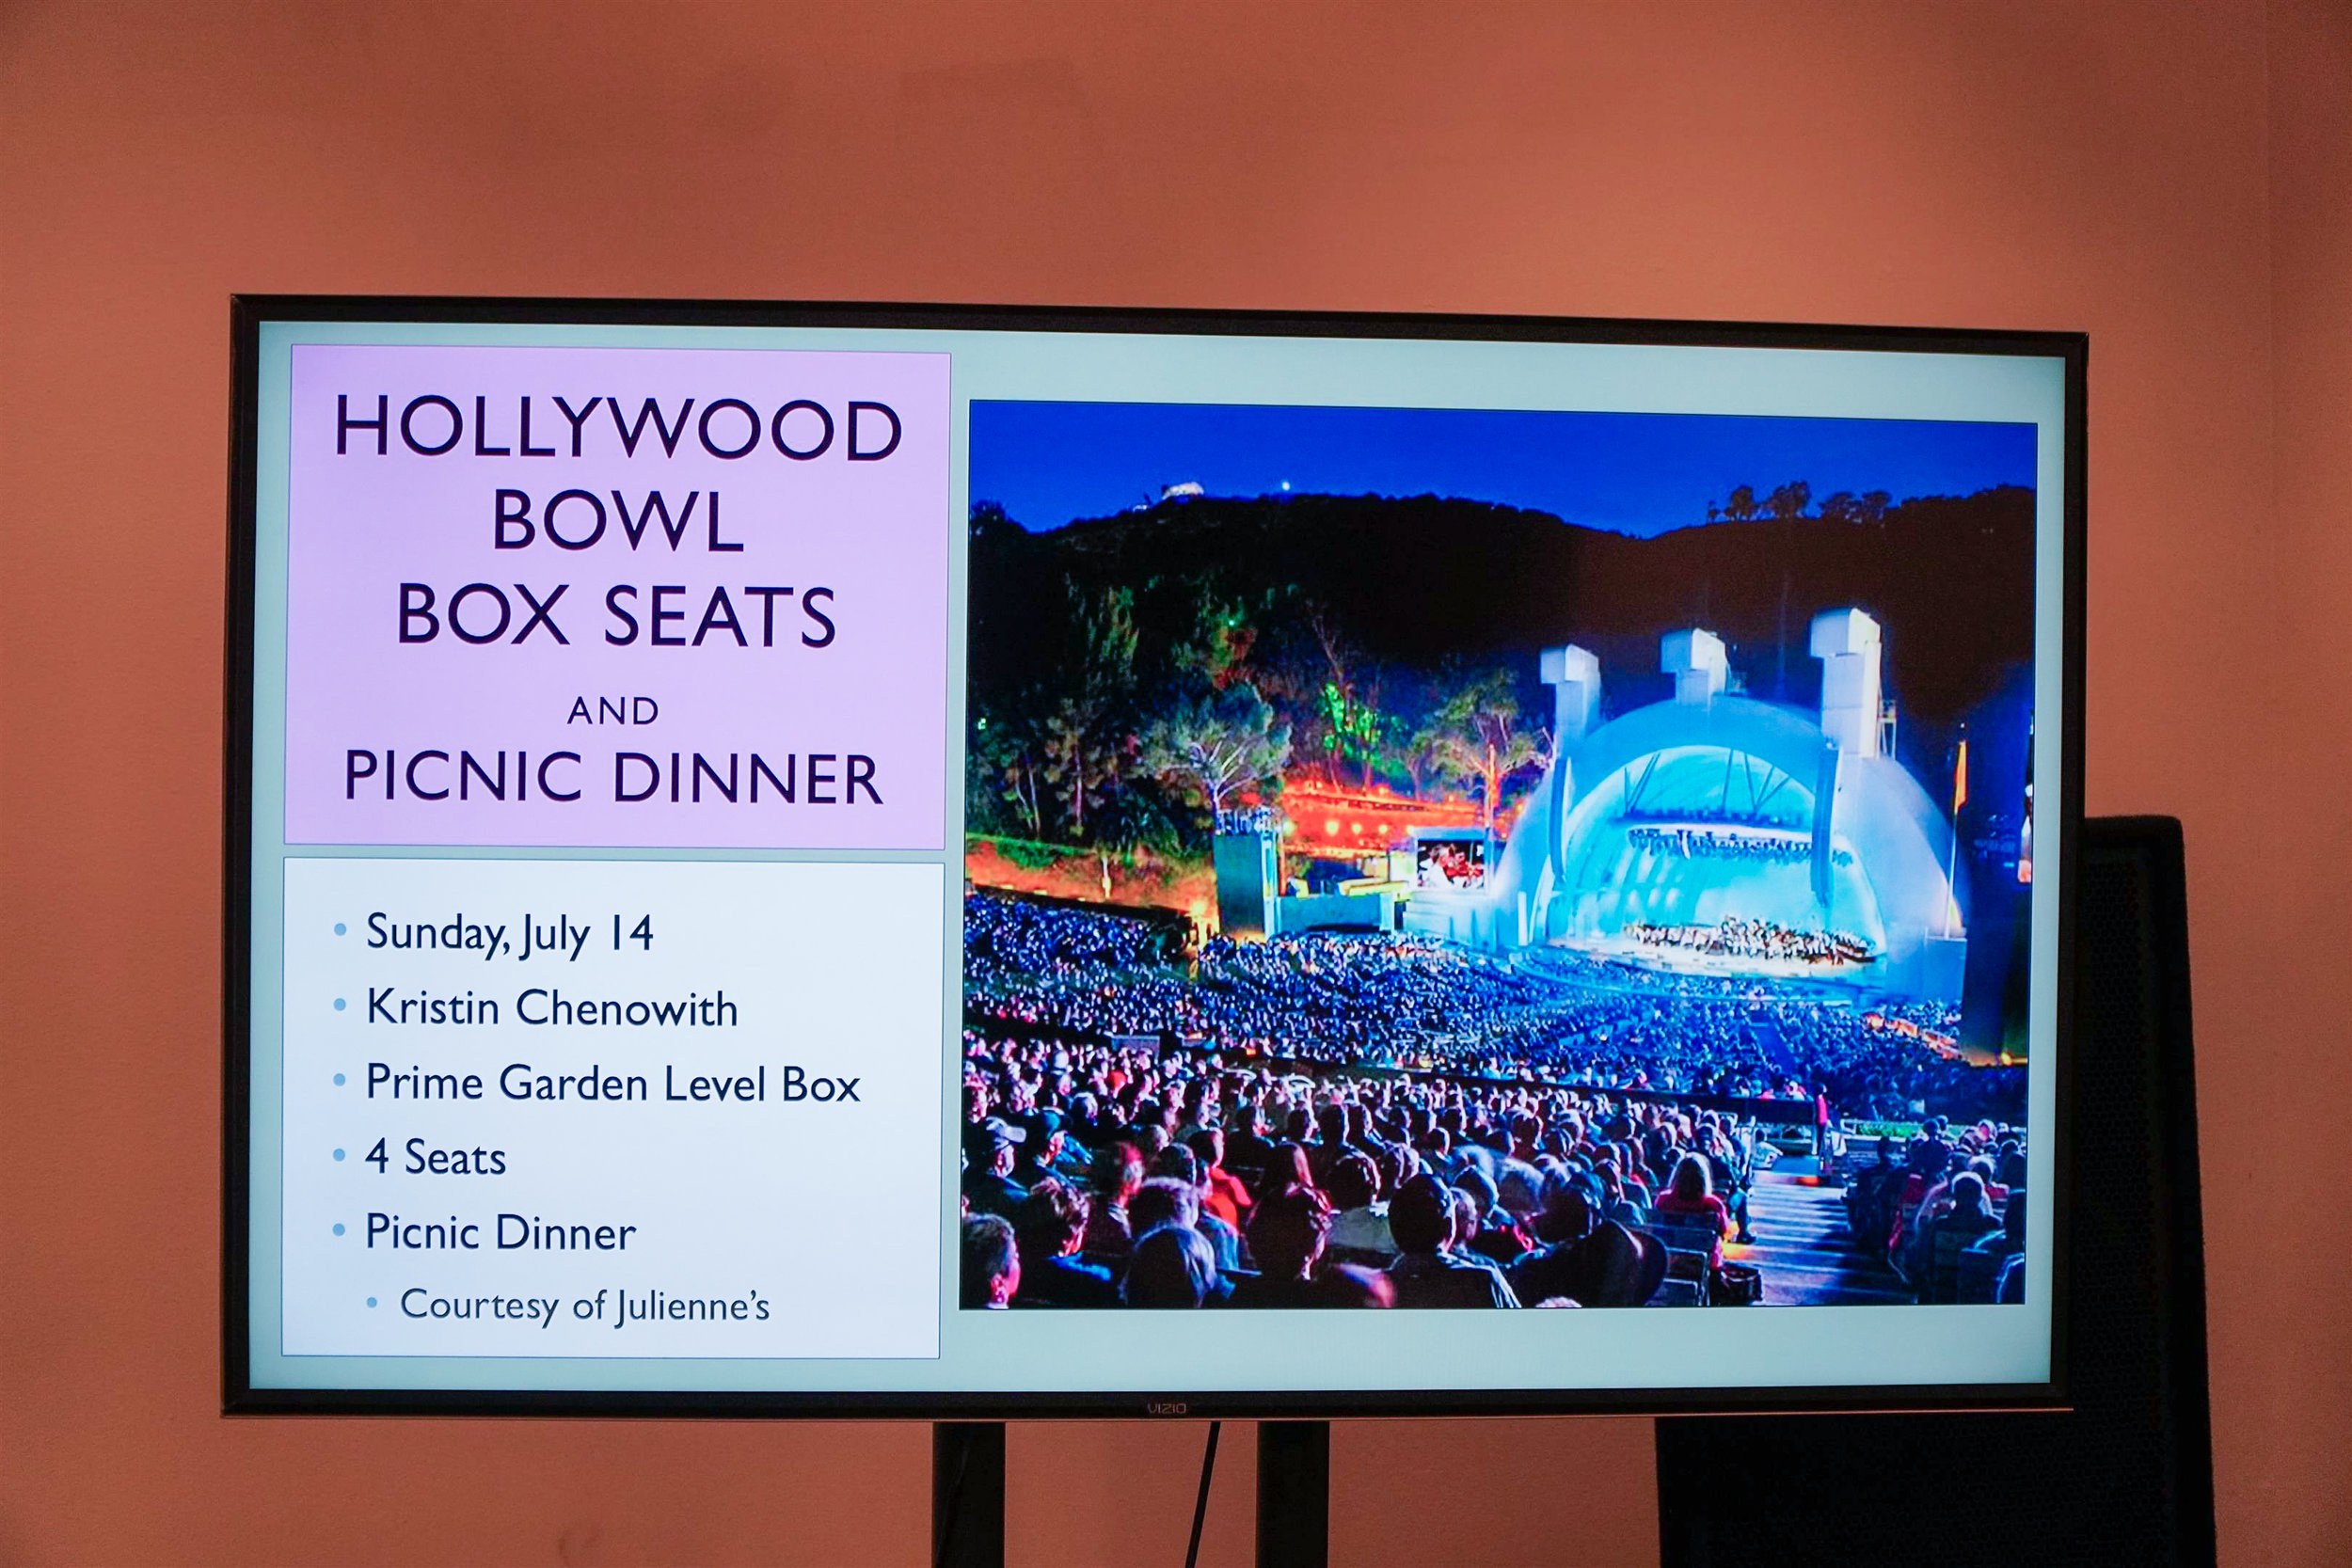 Hollywood Bowl Box Seats -Live Auction